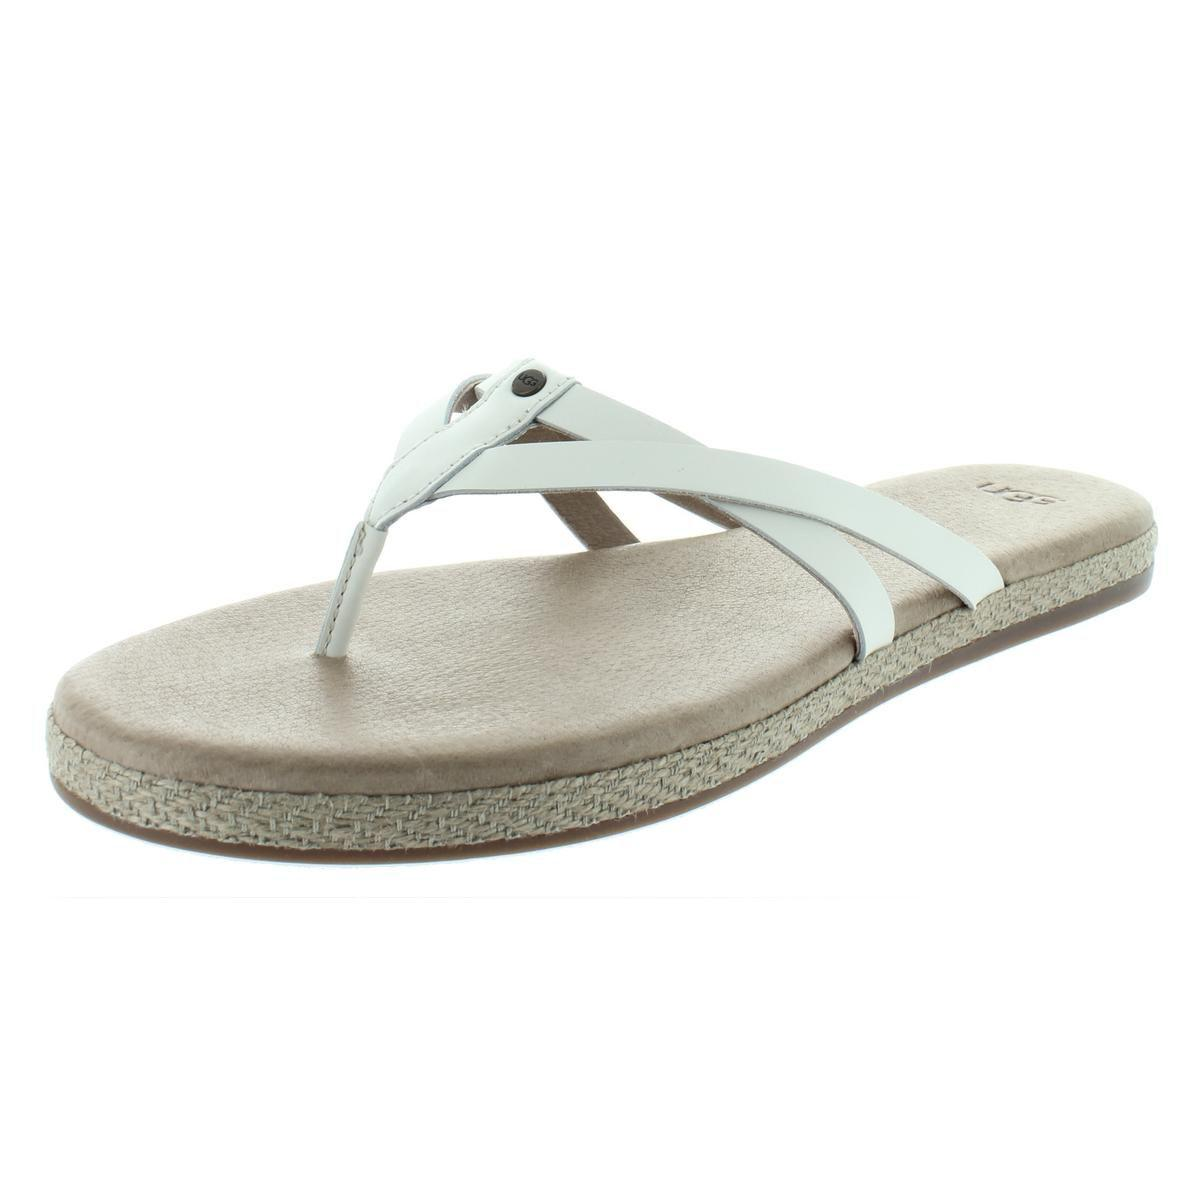 f998e9f4b87 Lyst - Ugg Womens Annice Leather Espadrille Flip-flops in White